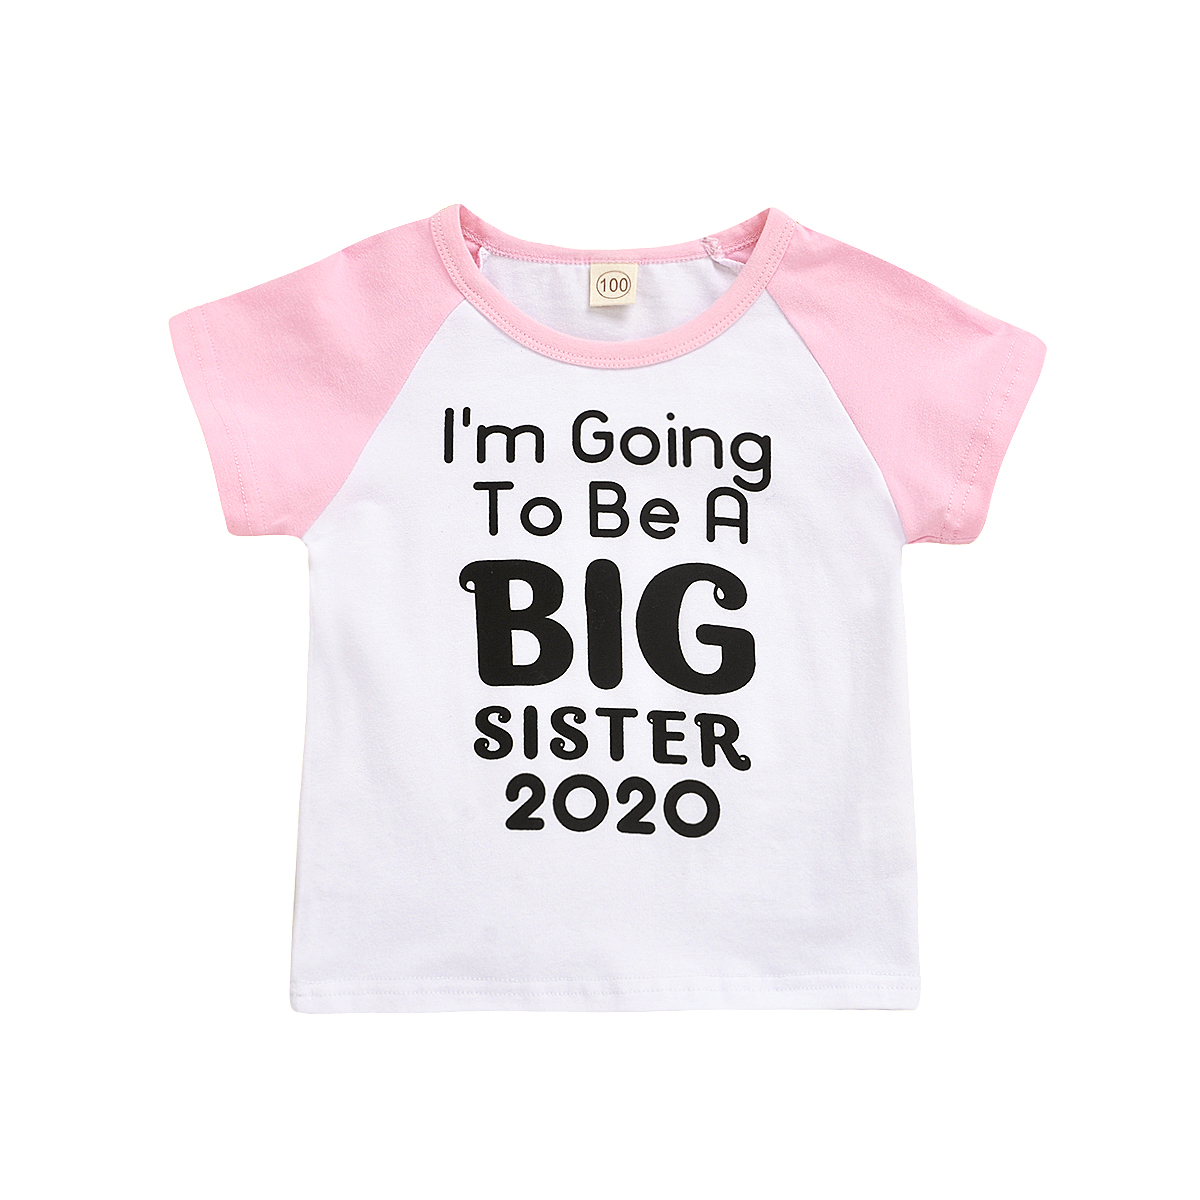 Toddler Kids Baby Boys Girls Big Brother Sister Summer Casual T-shirt Top Blouse